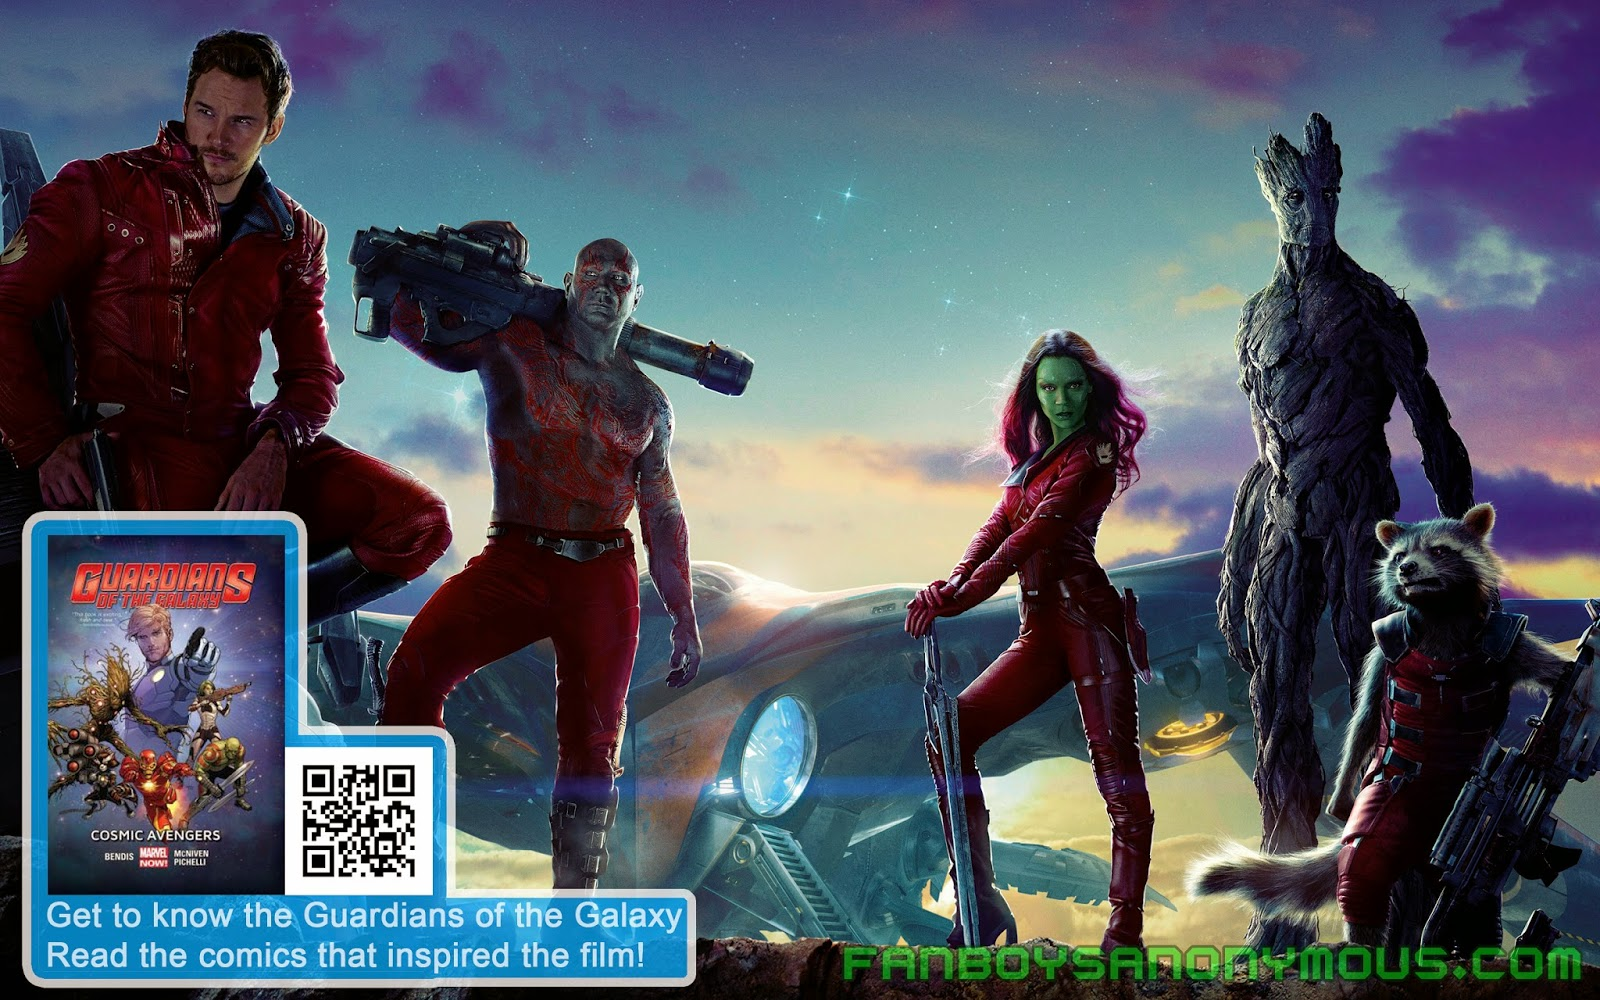 Exclusive Guardians of the Galaxy movie mid-credits and end-credits scenes spoilers on Fanboys Anonymous